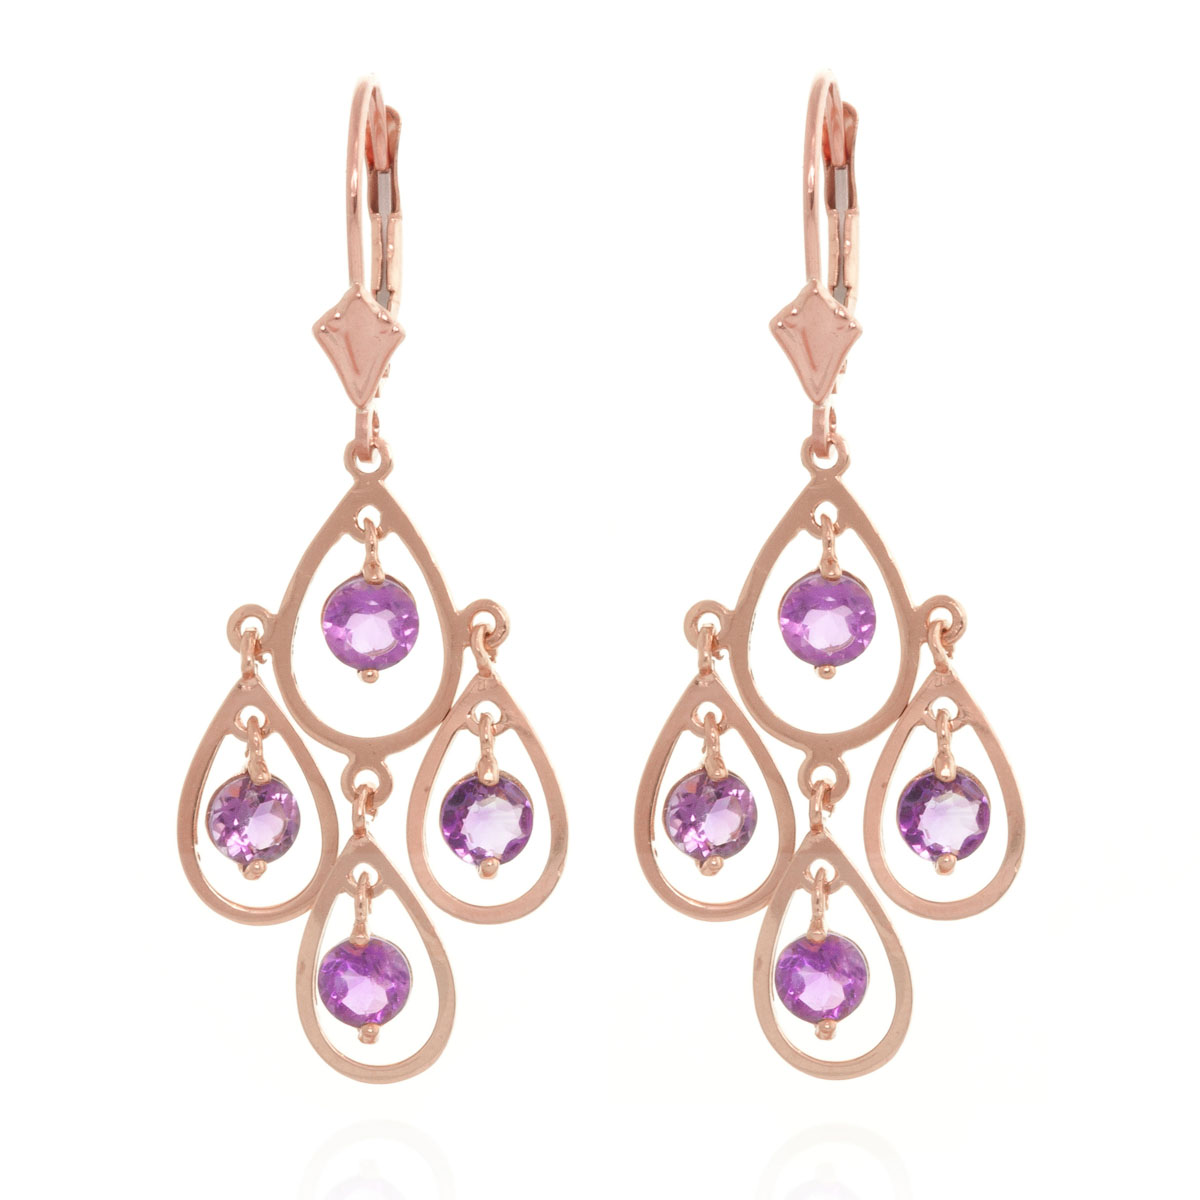 Amethyst Quadruplo Milan Drop Earrings 2.4 ctw in 9ct Rose Gold